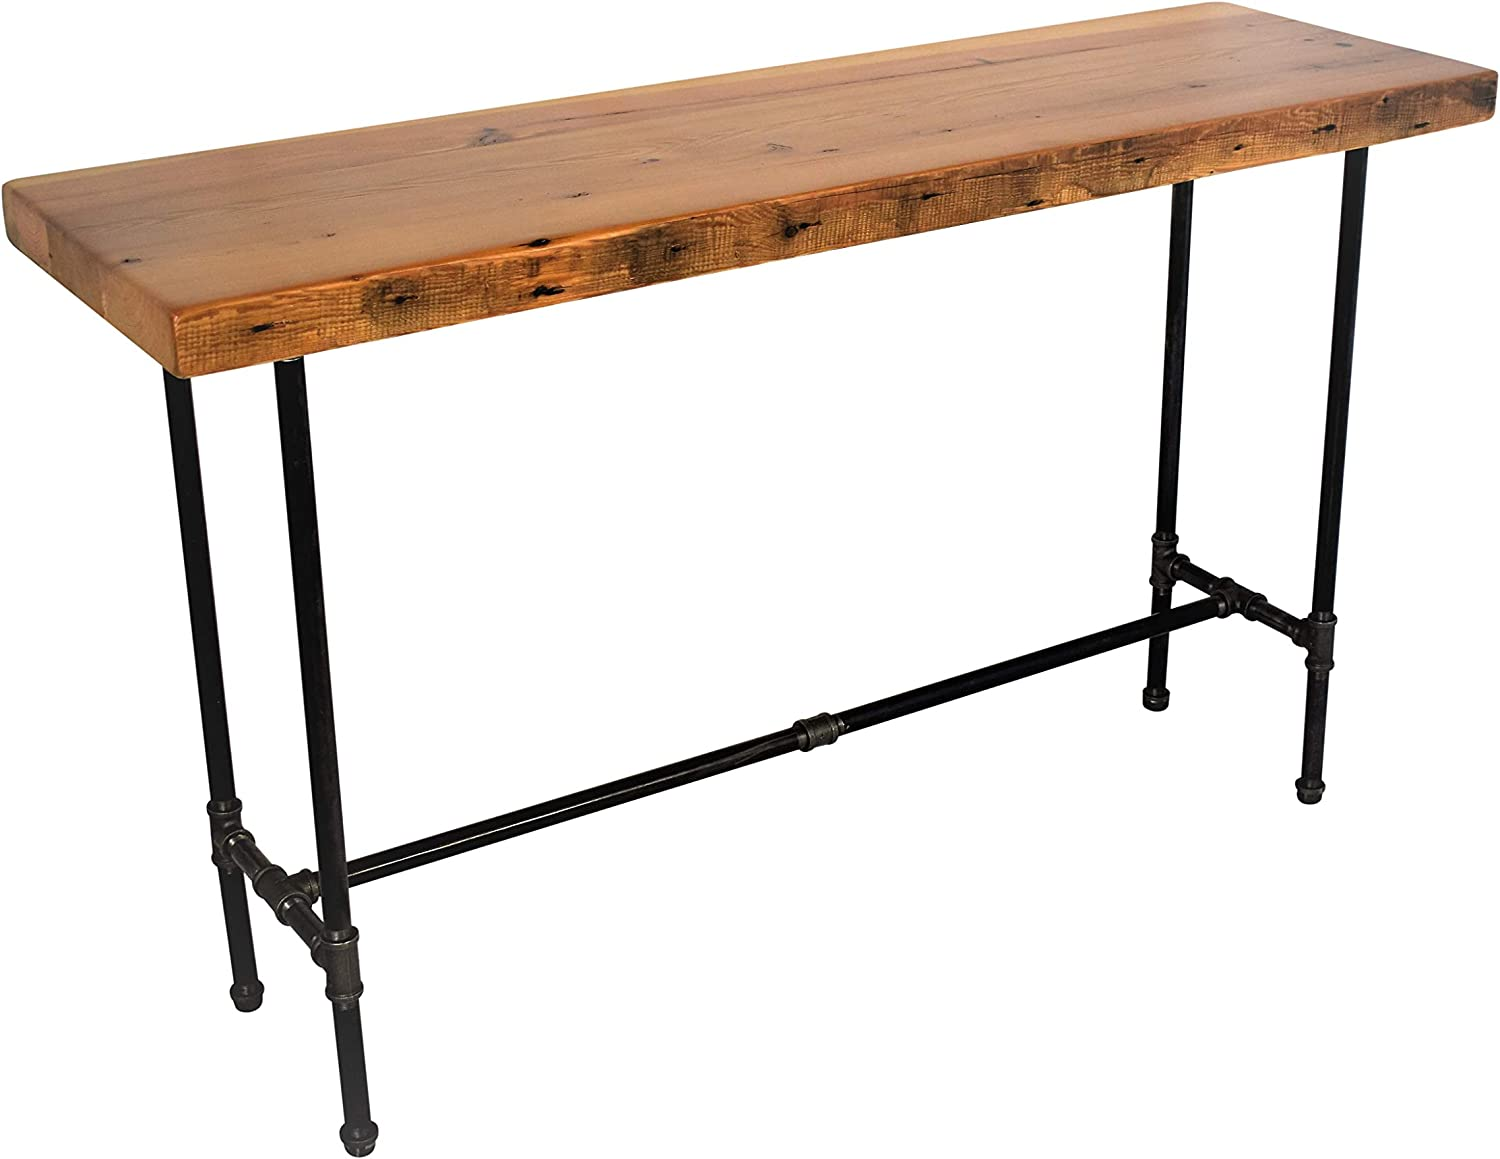 Sofa Table Entry Table Hallway Table Nook Table 42 Inch High Bar Height Wood Table 36 L X 12 W X 36 H Bees Wax Kitchen Dining